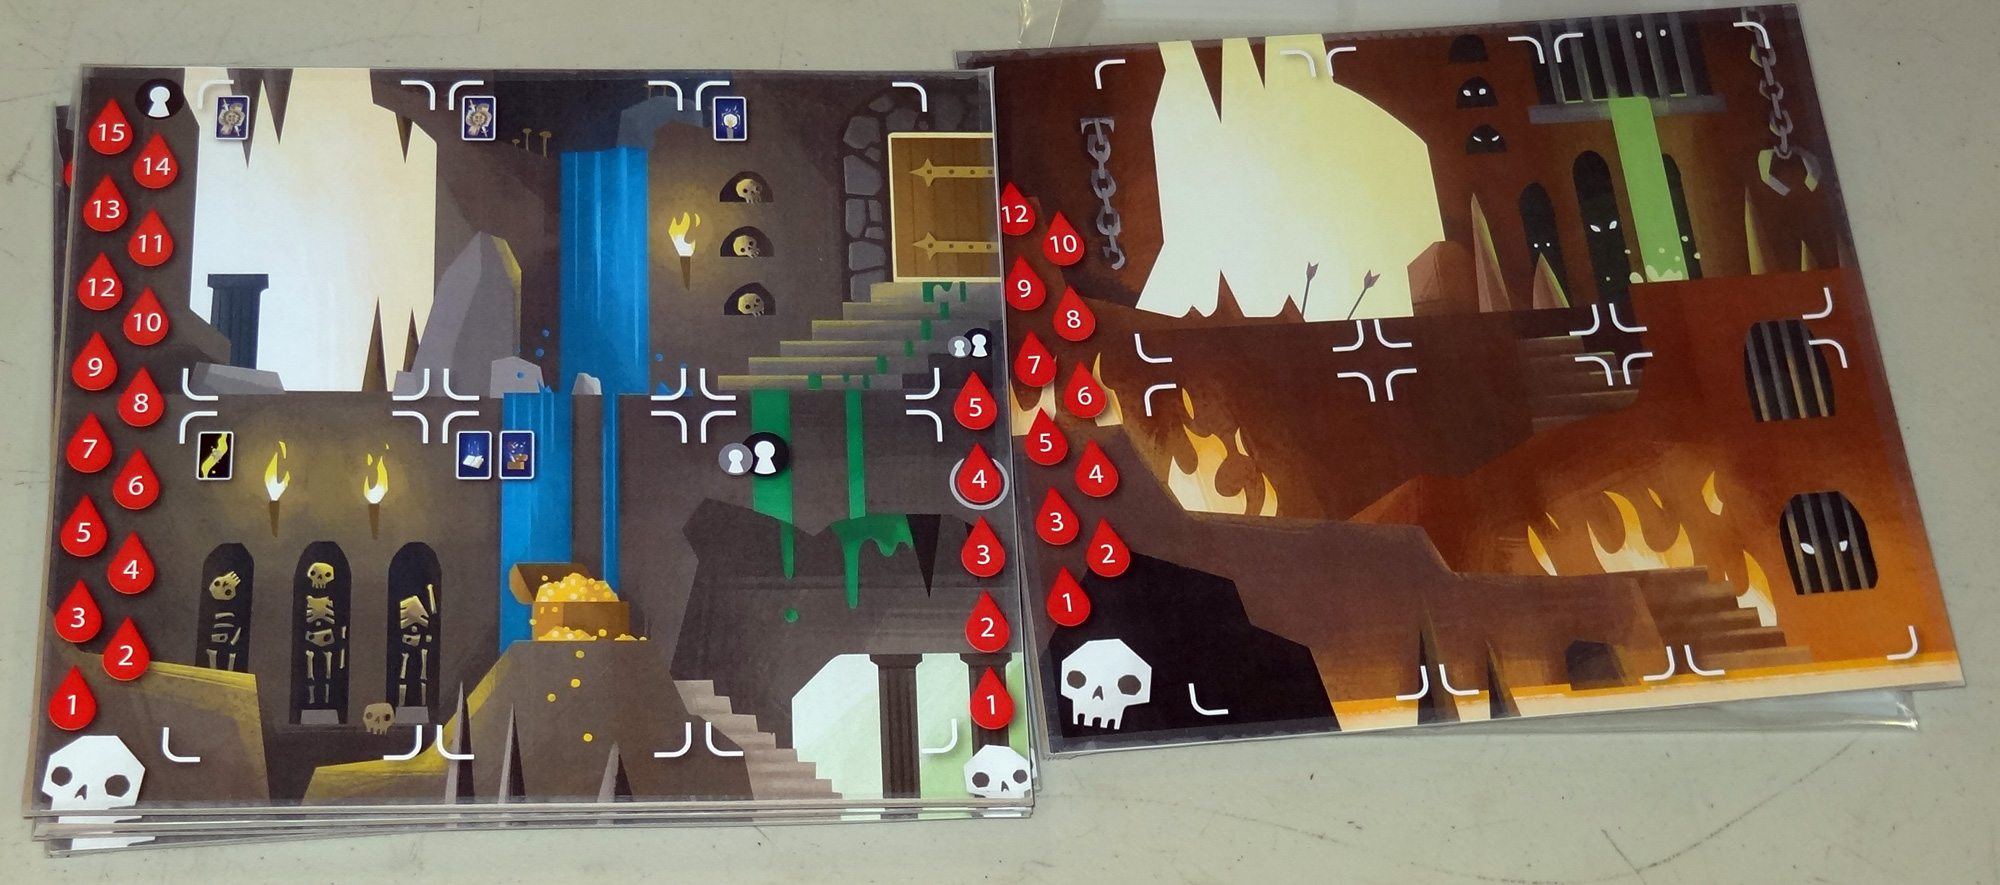 Catacombs Player Boards